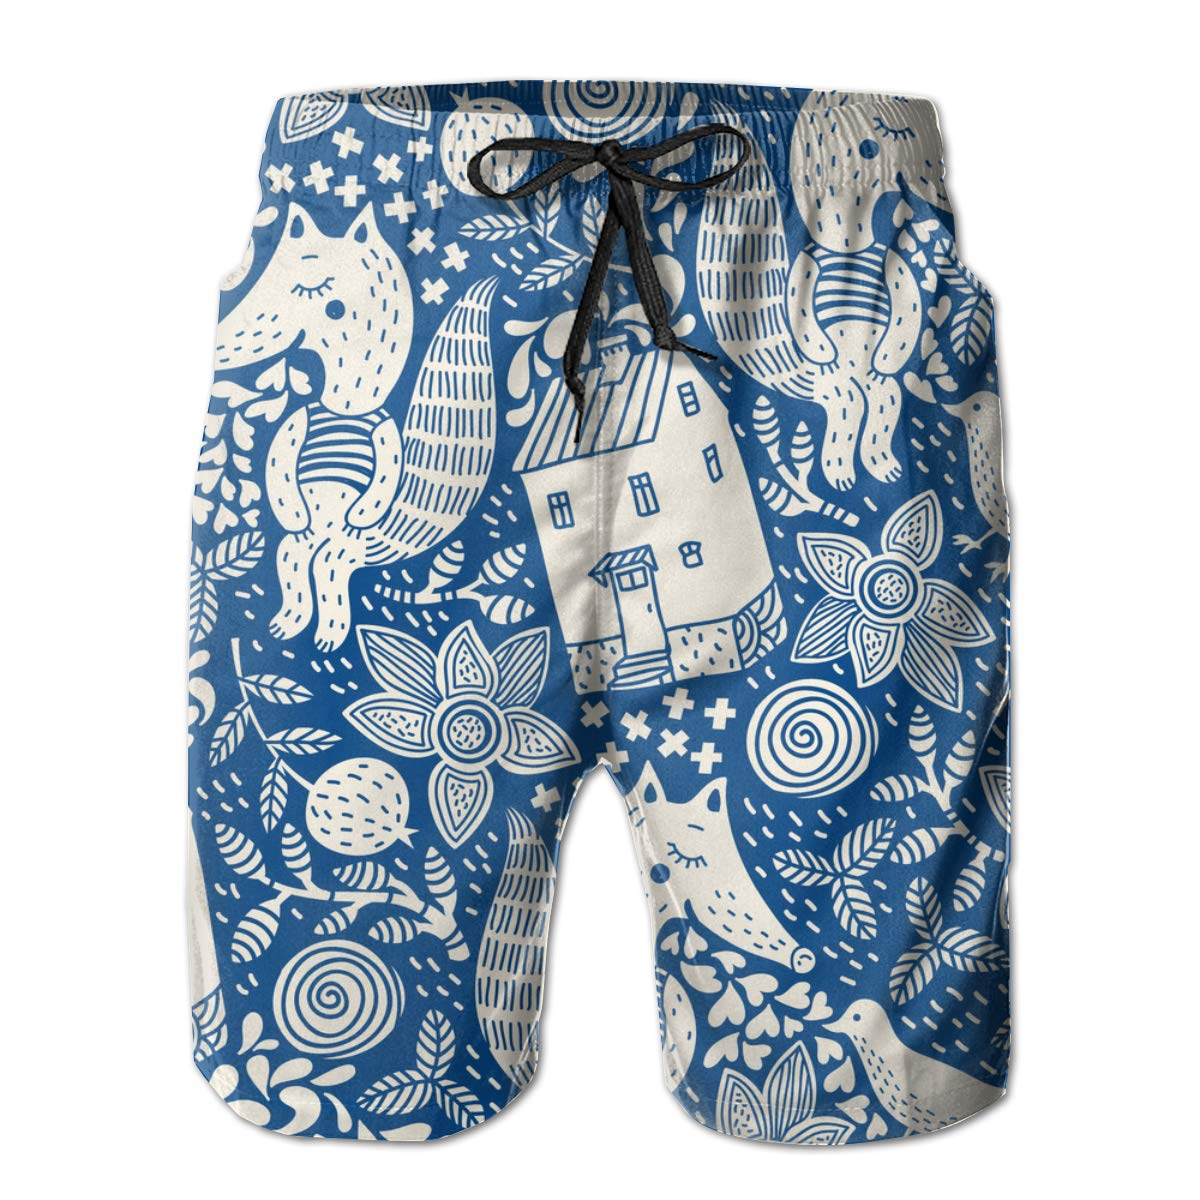 Cute Animals Mens Summer Swim Trunks 3D Graphic Quick Dry Funny Beach Board Shorts with Mesh Lining